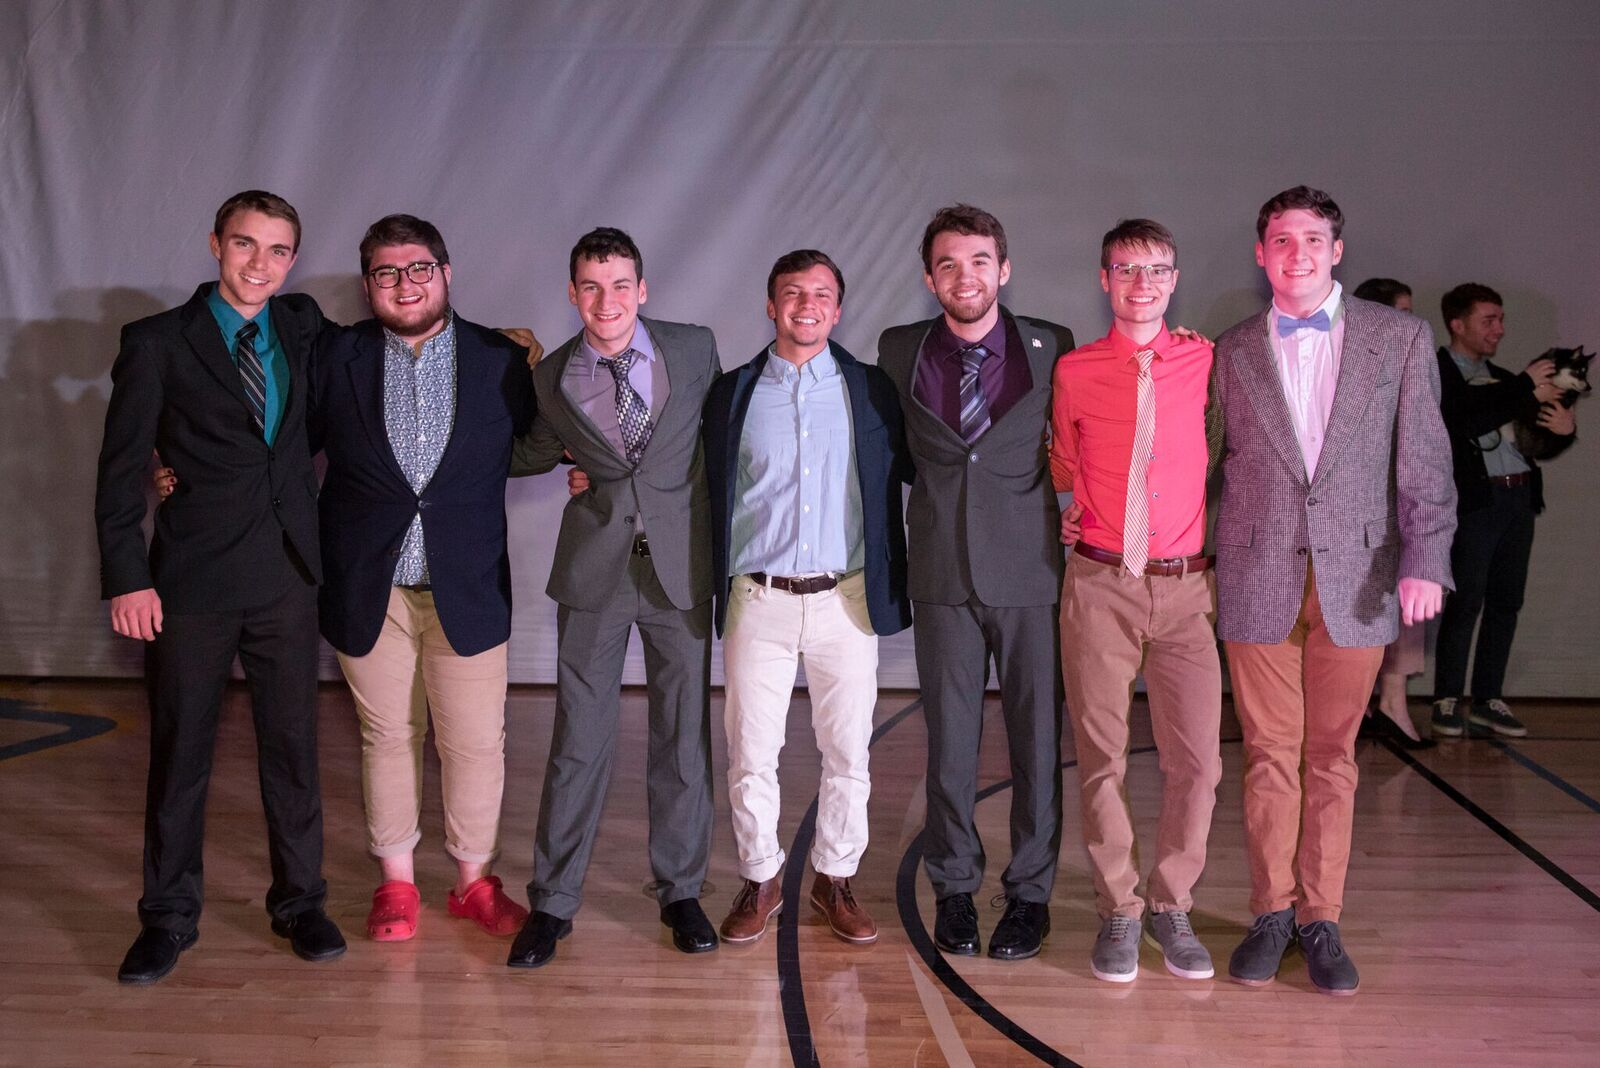 Big Man on Campus contestants from left to right: Patrick Carty '20, Ean Anderson '19, Nicholas Beecher '20, William Burdick '20, Michael Giordano '21, Nathan Miozza '19, and Patrick Fay '20